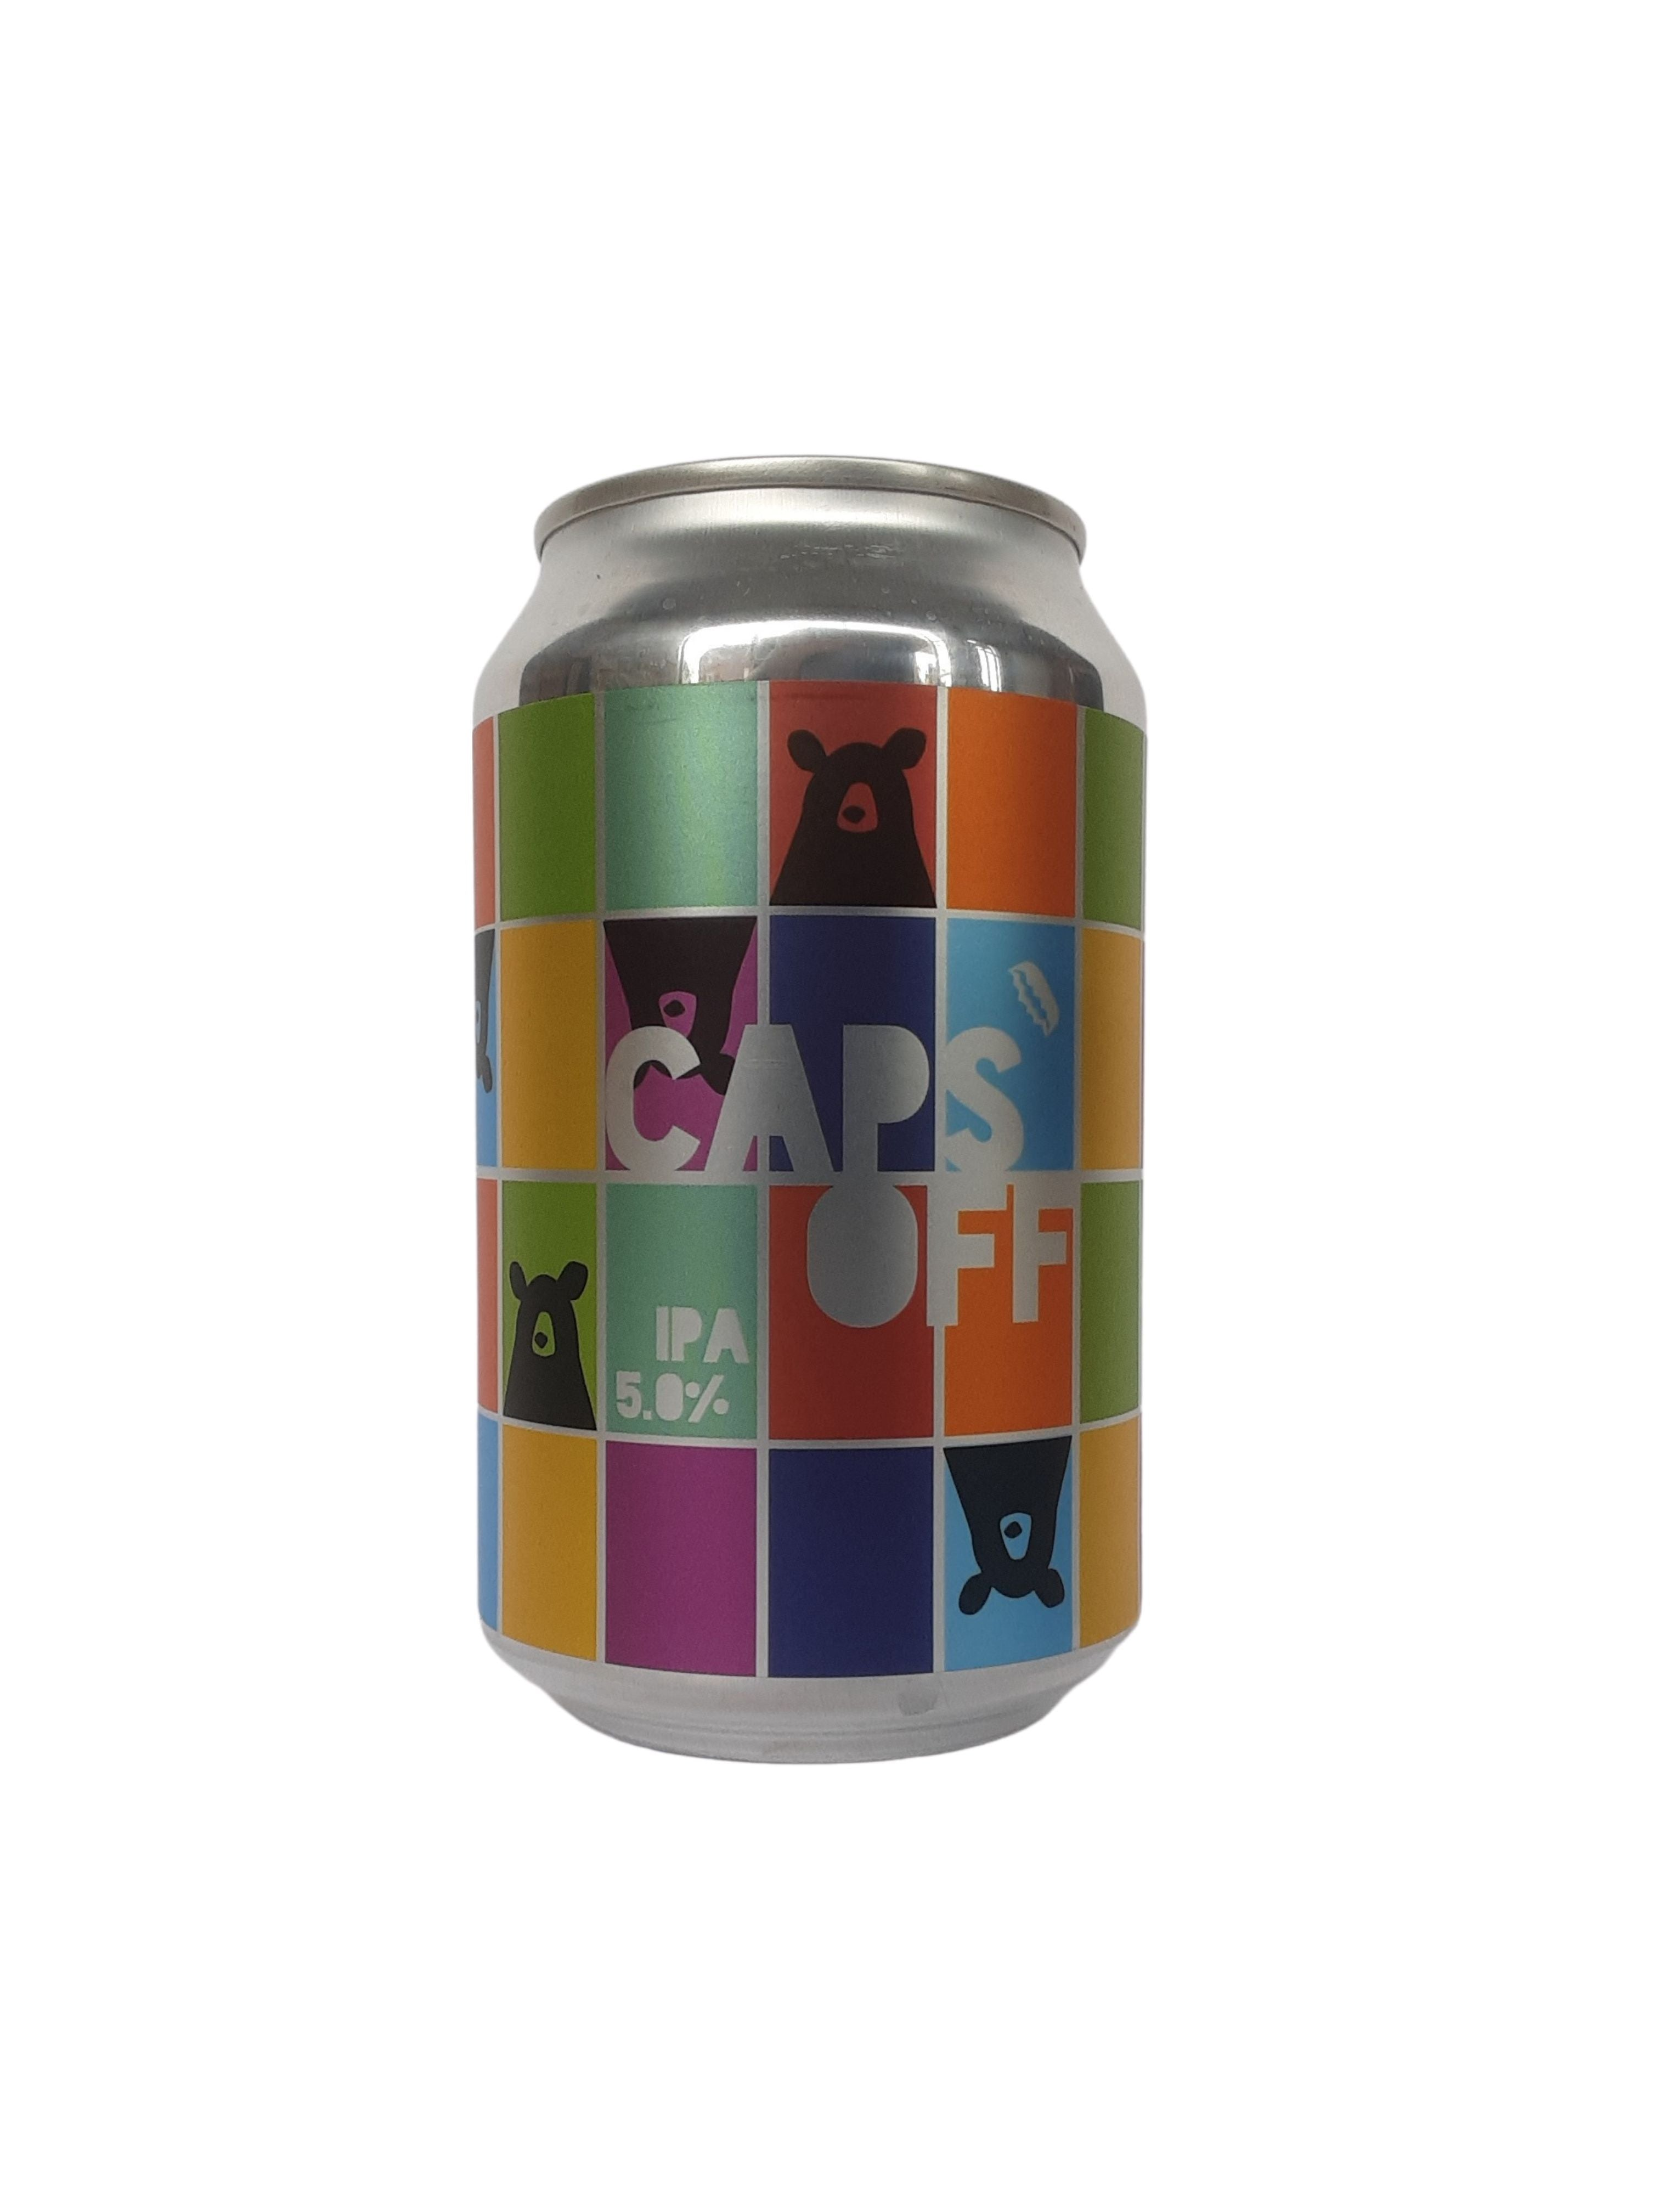 Caps Off - IPA - IPA - 5% (Brand New)